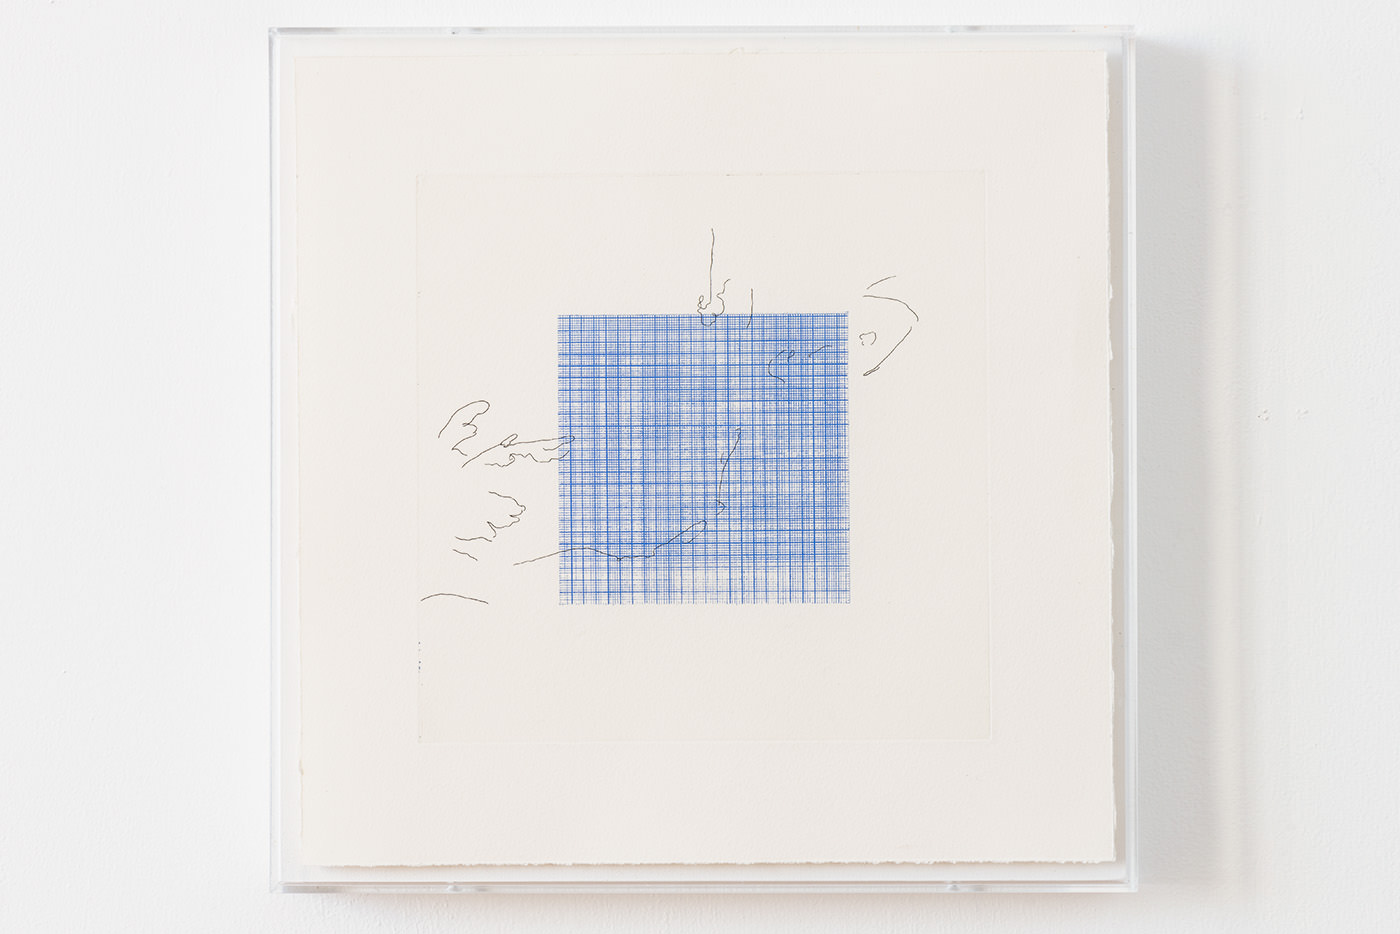 lines ( e.l ), アルシュ紙にエッチング (2版2色 ) (etching on arches paper, 2plates 2colors ), 350 × 350 mm / 2014 ( photo by Ken Kato )